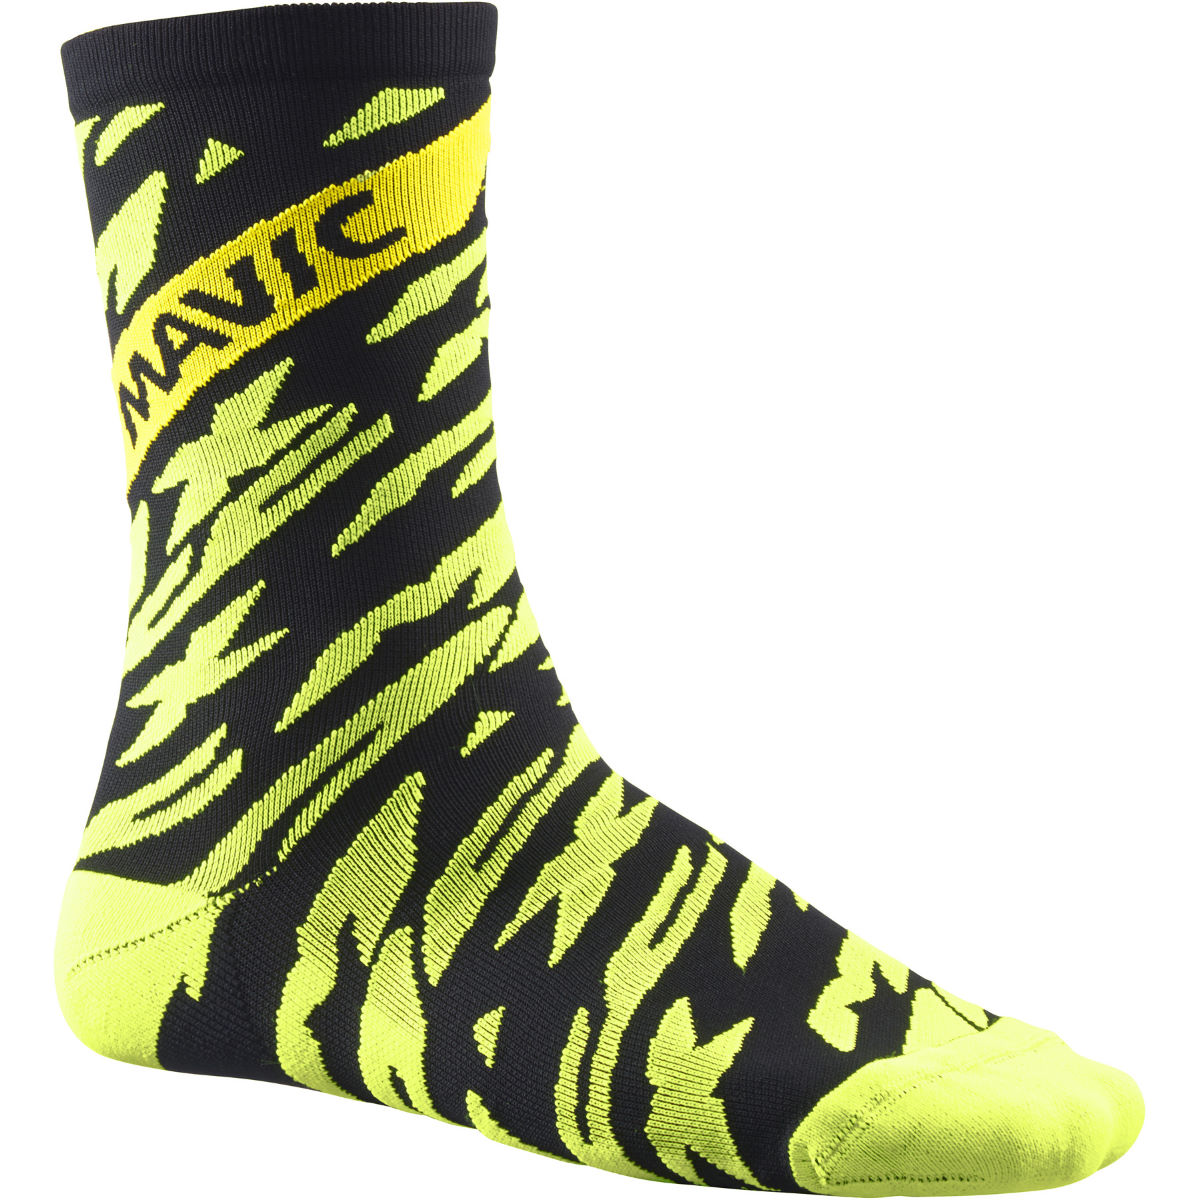 Chaussettes Mavic Deemax Pro (hautes) - 43 - 46 Safety Yellow/Black